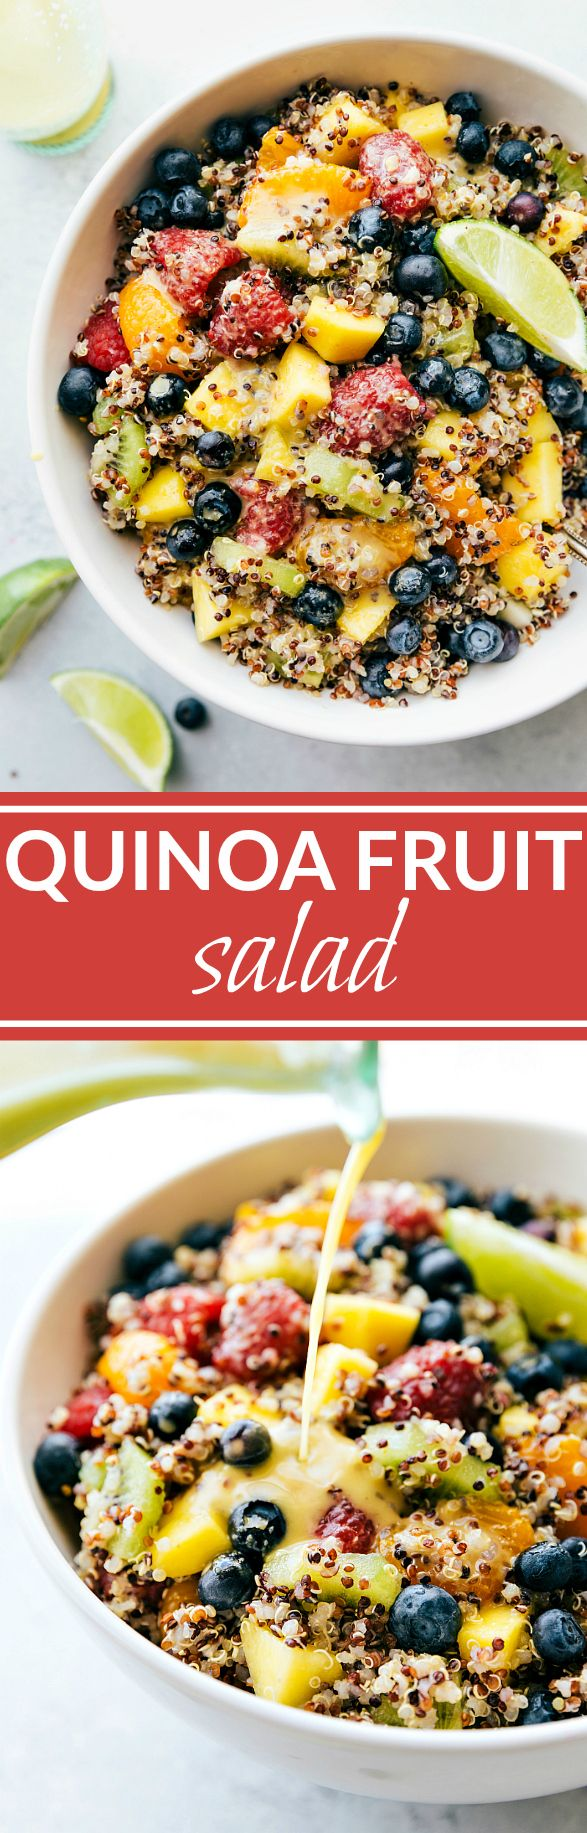 FRUIT QUINOA SALAD! A tri-colored quinoa salad packed with tropical fruits and dressed in a tangy citrus dressing. This salad is vibrant, healthy, and delicious! I Recipe from chelseasmessyapron.com